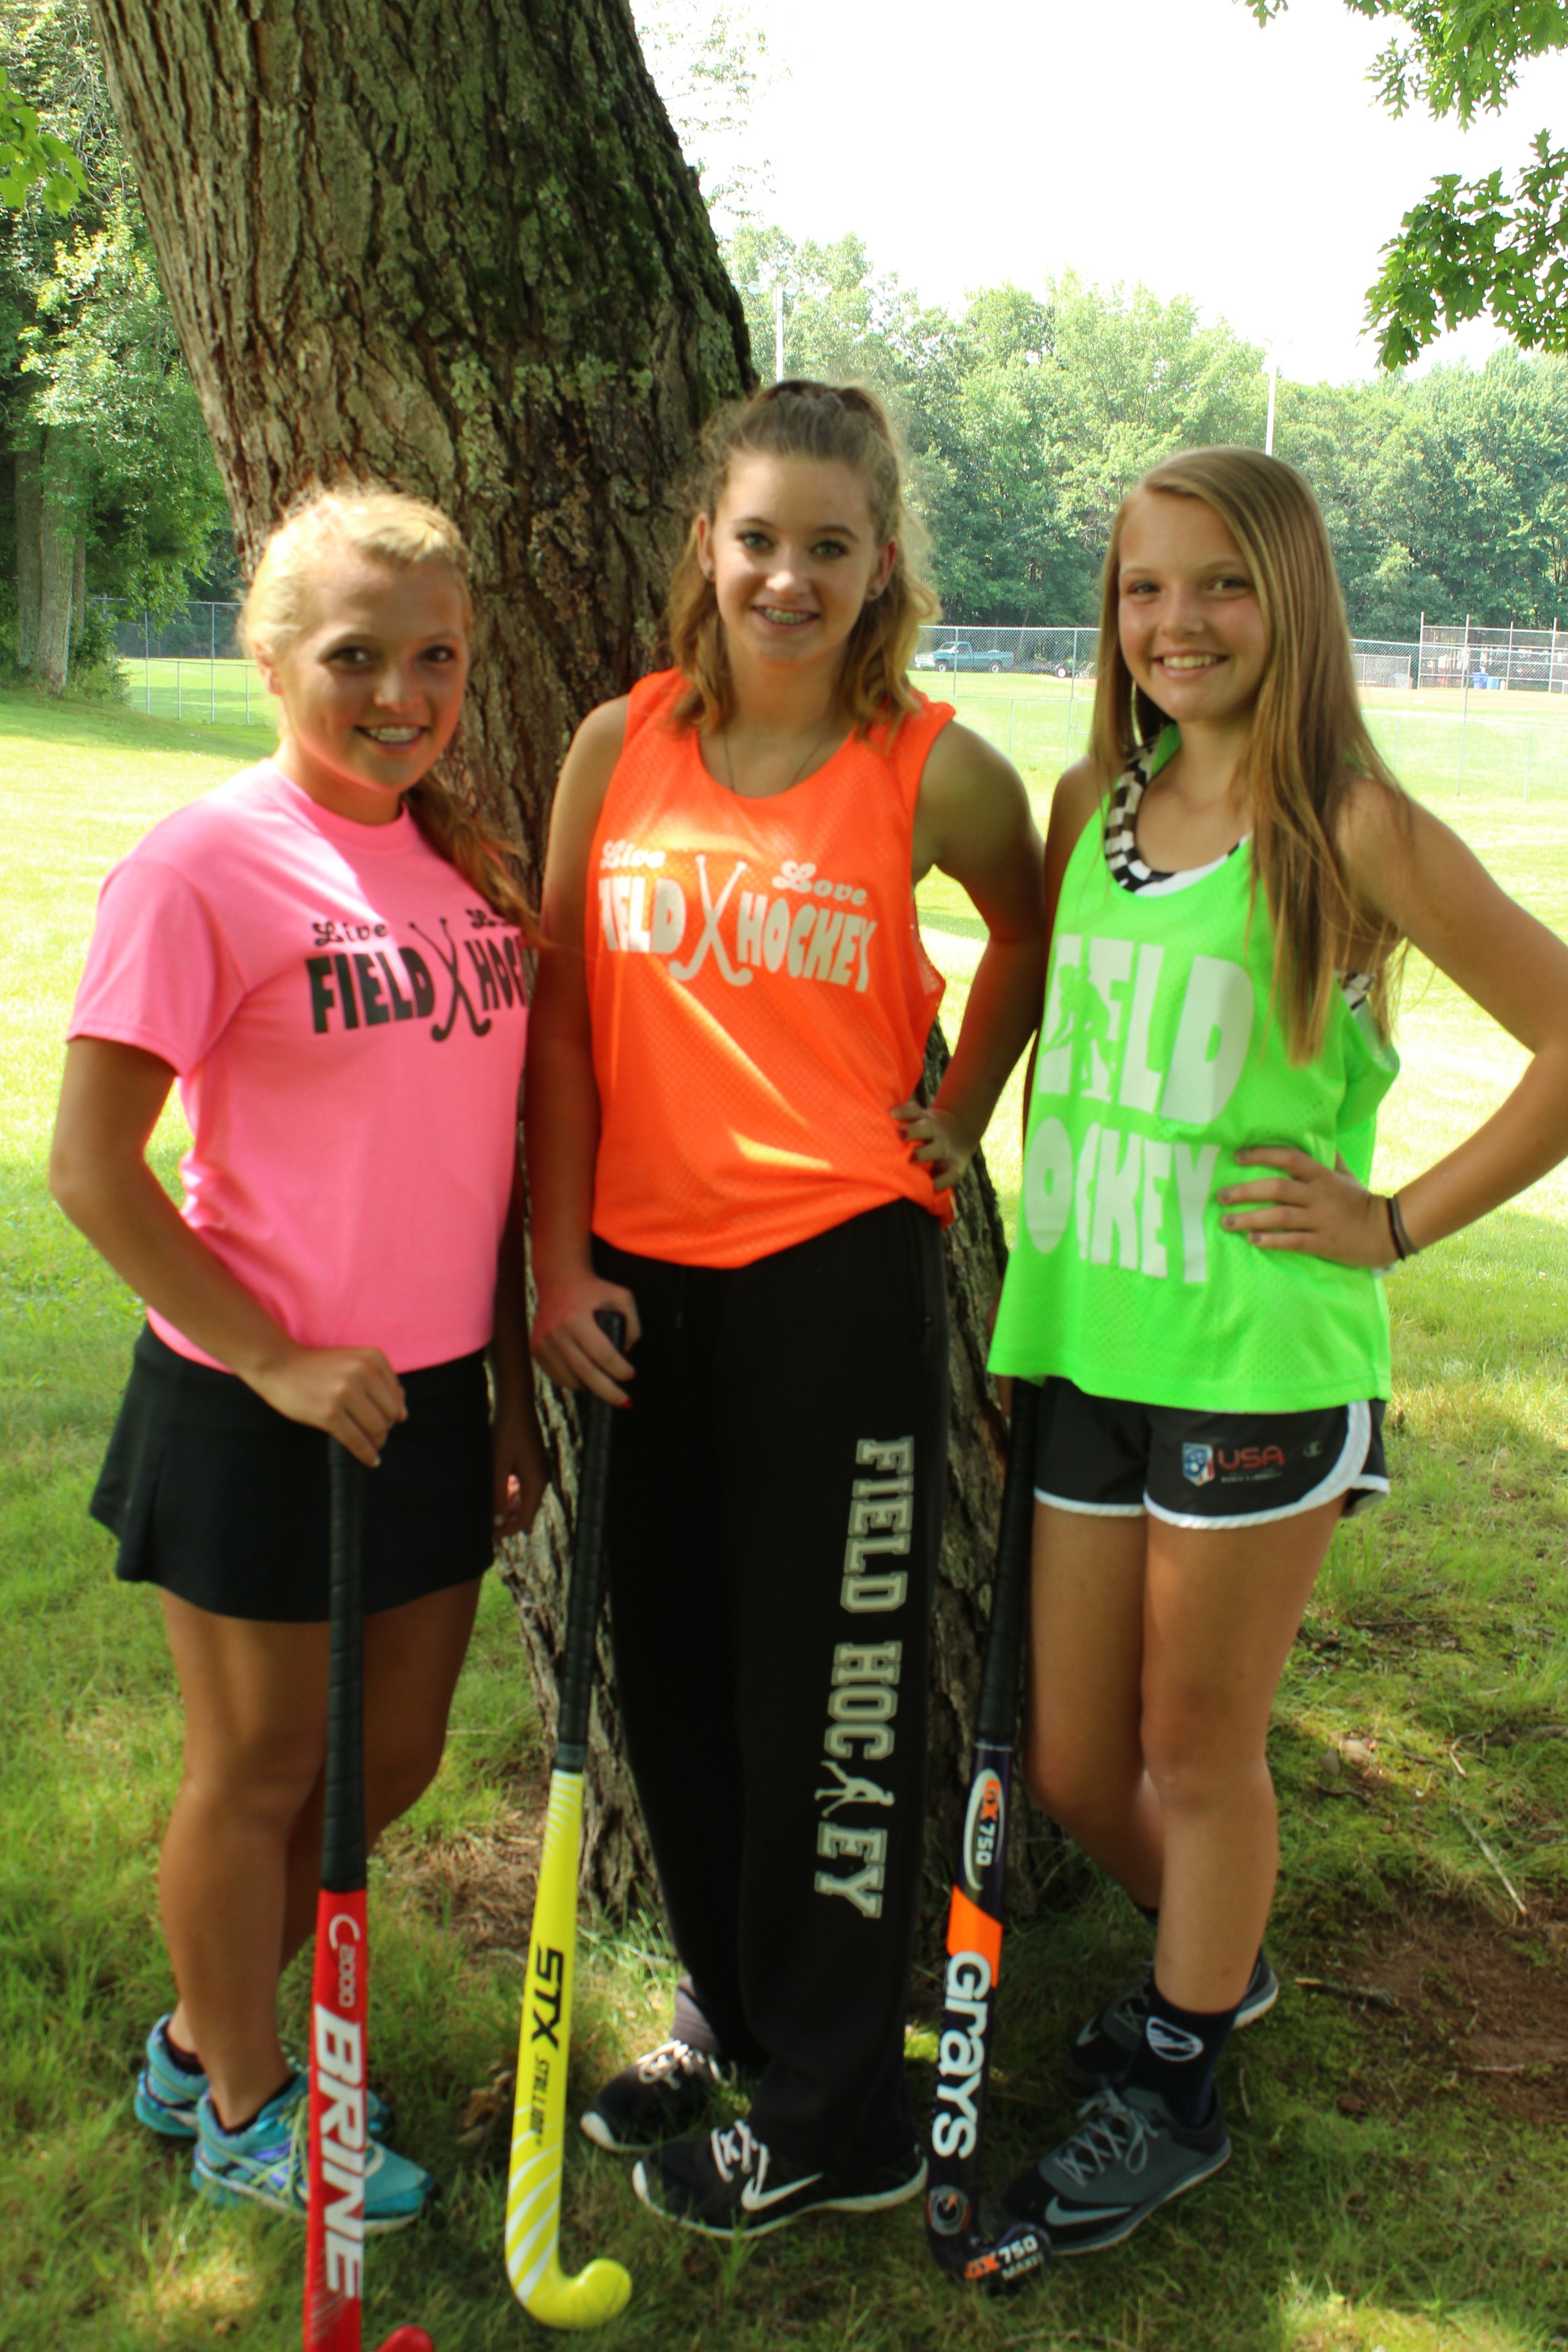 Check Out Some Of Our Field Hockey Outfits Mix And Match To Show Your Style Find Your Perfect Field Hockey Field Hockey Outfits Hockey Outfits Hockey Clothes